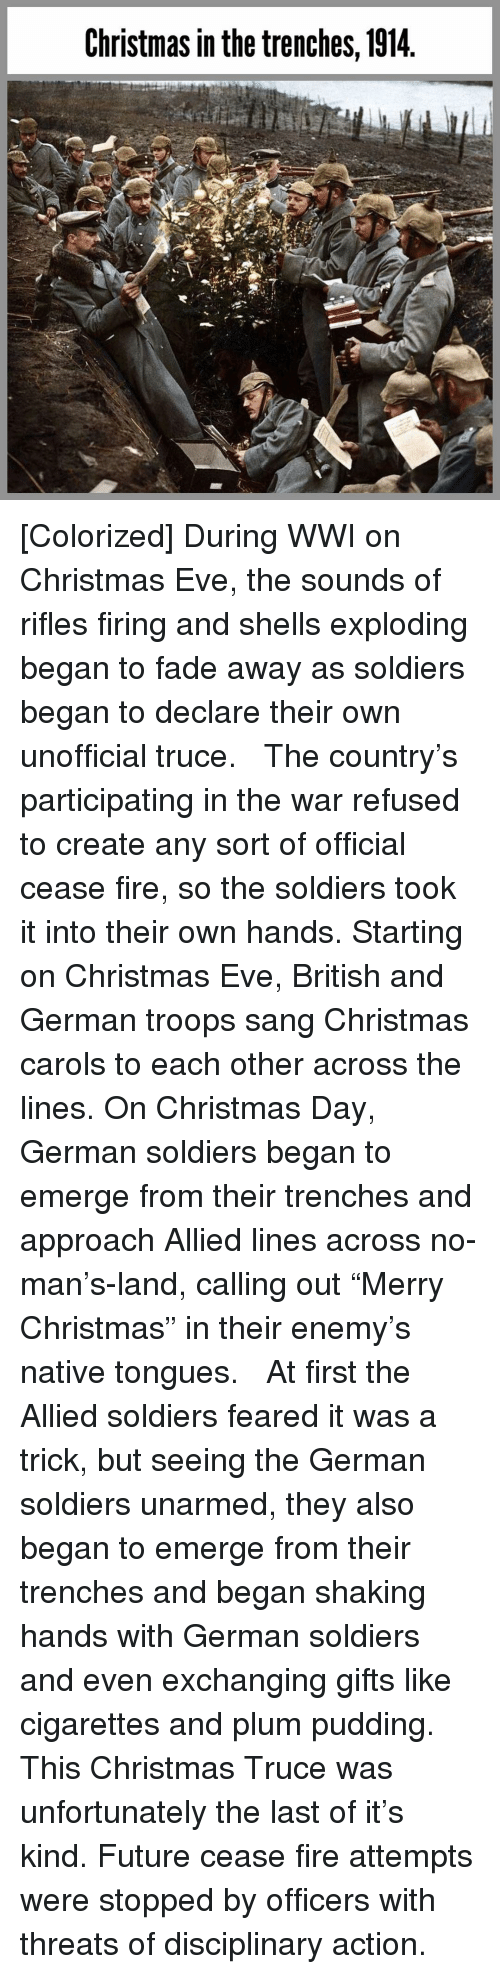 """Pudding: Christmas in the trenches, 1914 [Colorized] During WWI on Christmas Eve, the sounds of rifles firing and shells exploding began to fade away as soldiers began to declare their own unofficial truce.   The country's participating in the war refused to create any sort of official cease fire, so the soldiers took it into their own hands. Starting on Christmas Eve, British and German troops sang Christmas carols to each other across the lines. On Christmas Day, German soldiers began to emerge from their trenches and approach Allied lines across no-man's-land, calling out """"Merry Christmas"""" in their enemy's native tongues.   At first the Allied soldiers feared it was a trick, but seeing the German soldiers unarmed, they also began to emerge from their trenches and began shaking hands with German soldiers and even exchanging gifts like cigarettes and plum pudding.   This Christmas Truce was unfortunately the last of it's kind. Future cease fire attempts were stopped by officers with threats of disciplinary action."""